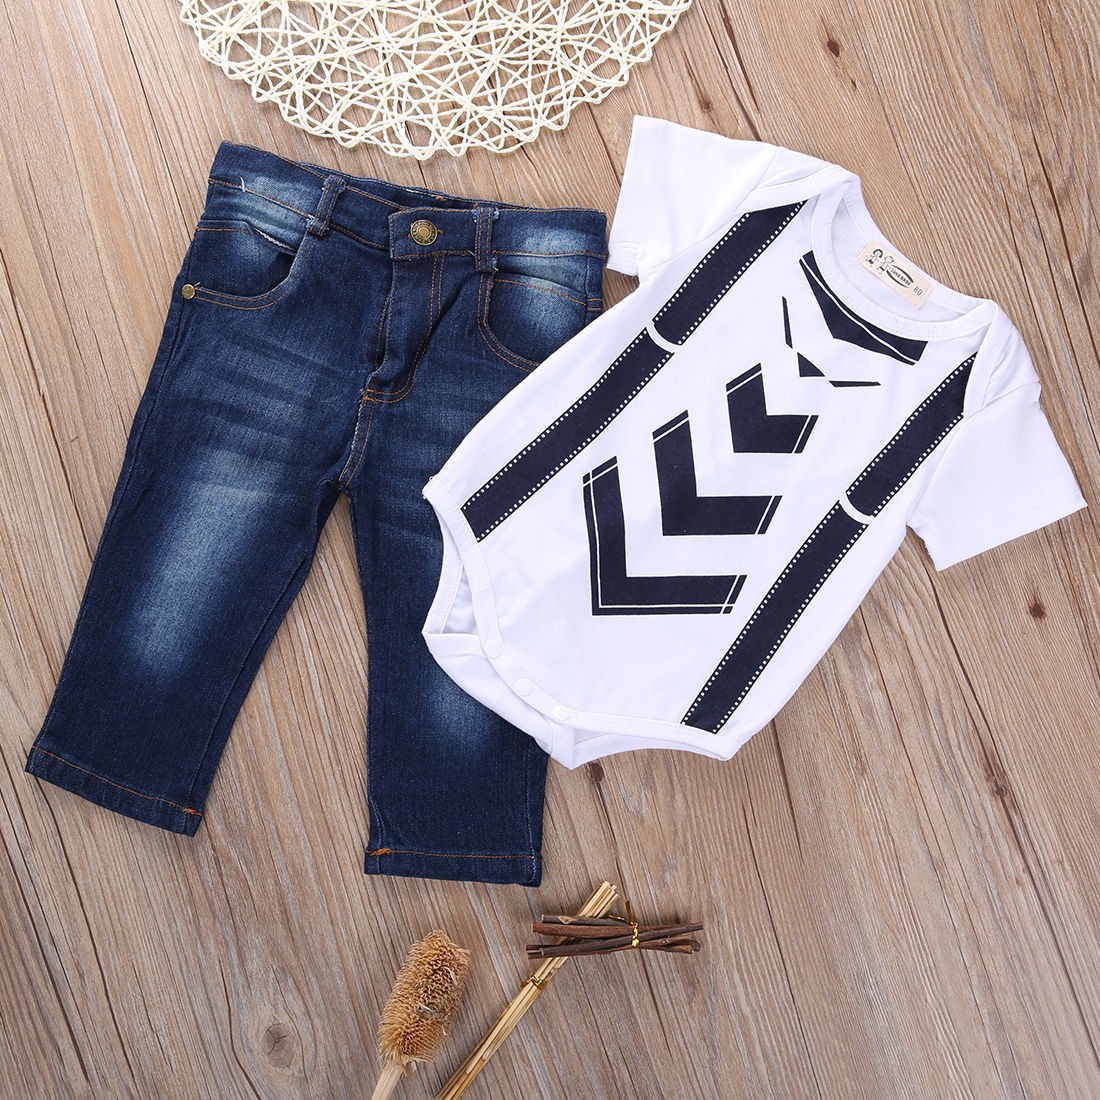 2016 Infant Baby Boy Toddler Short Sleeve Bow Tie Suspenders Bodysuit Shirt Tops Jeans Pants Outfit 0 24M 2019 in Clothing Sets from Mother Kids